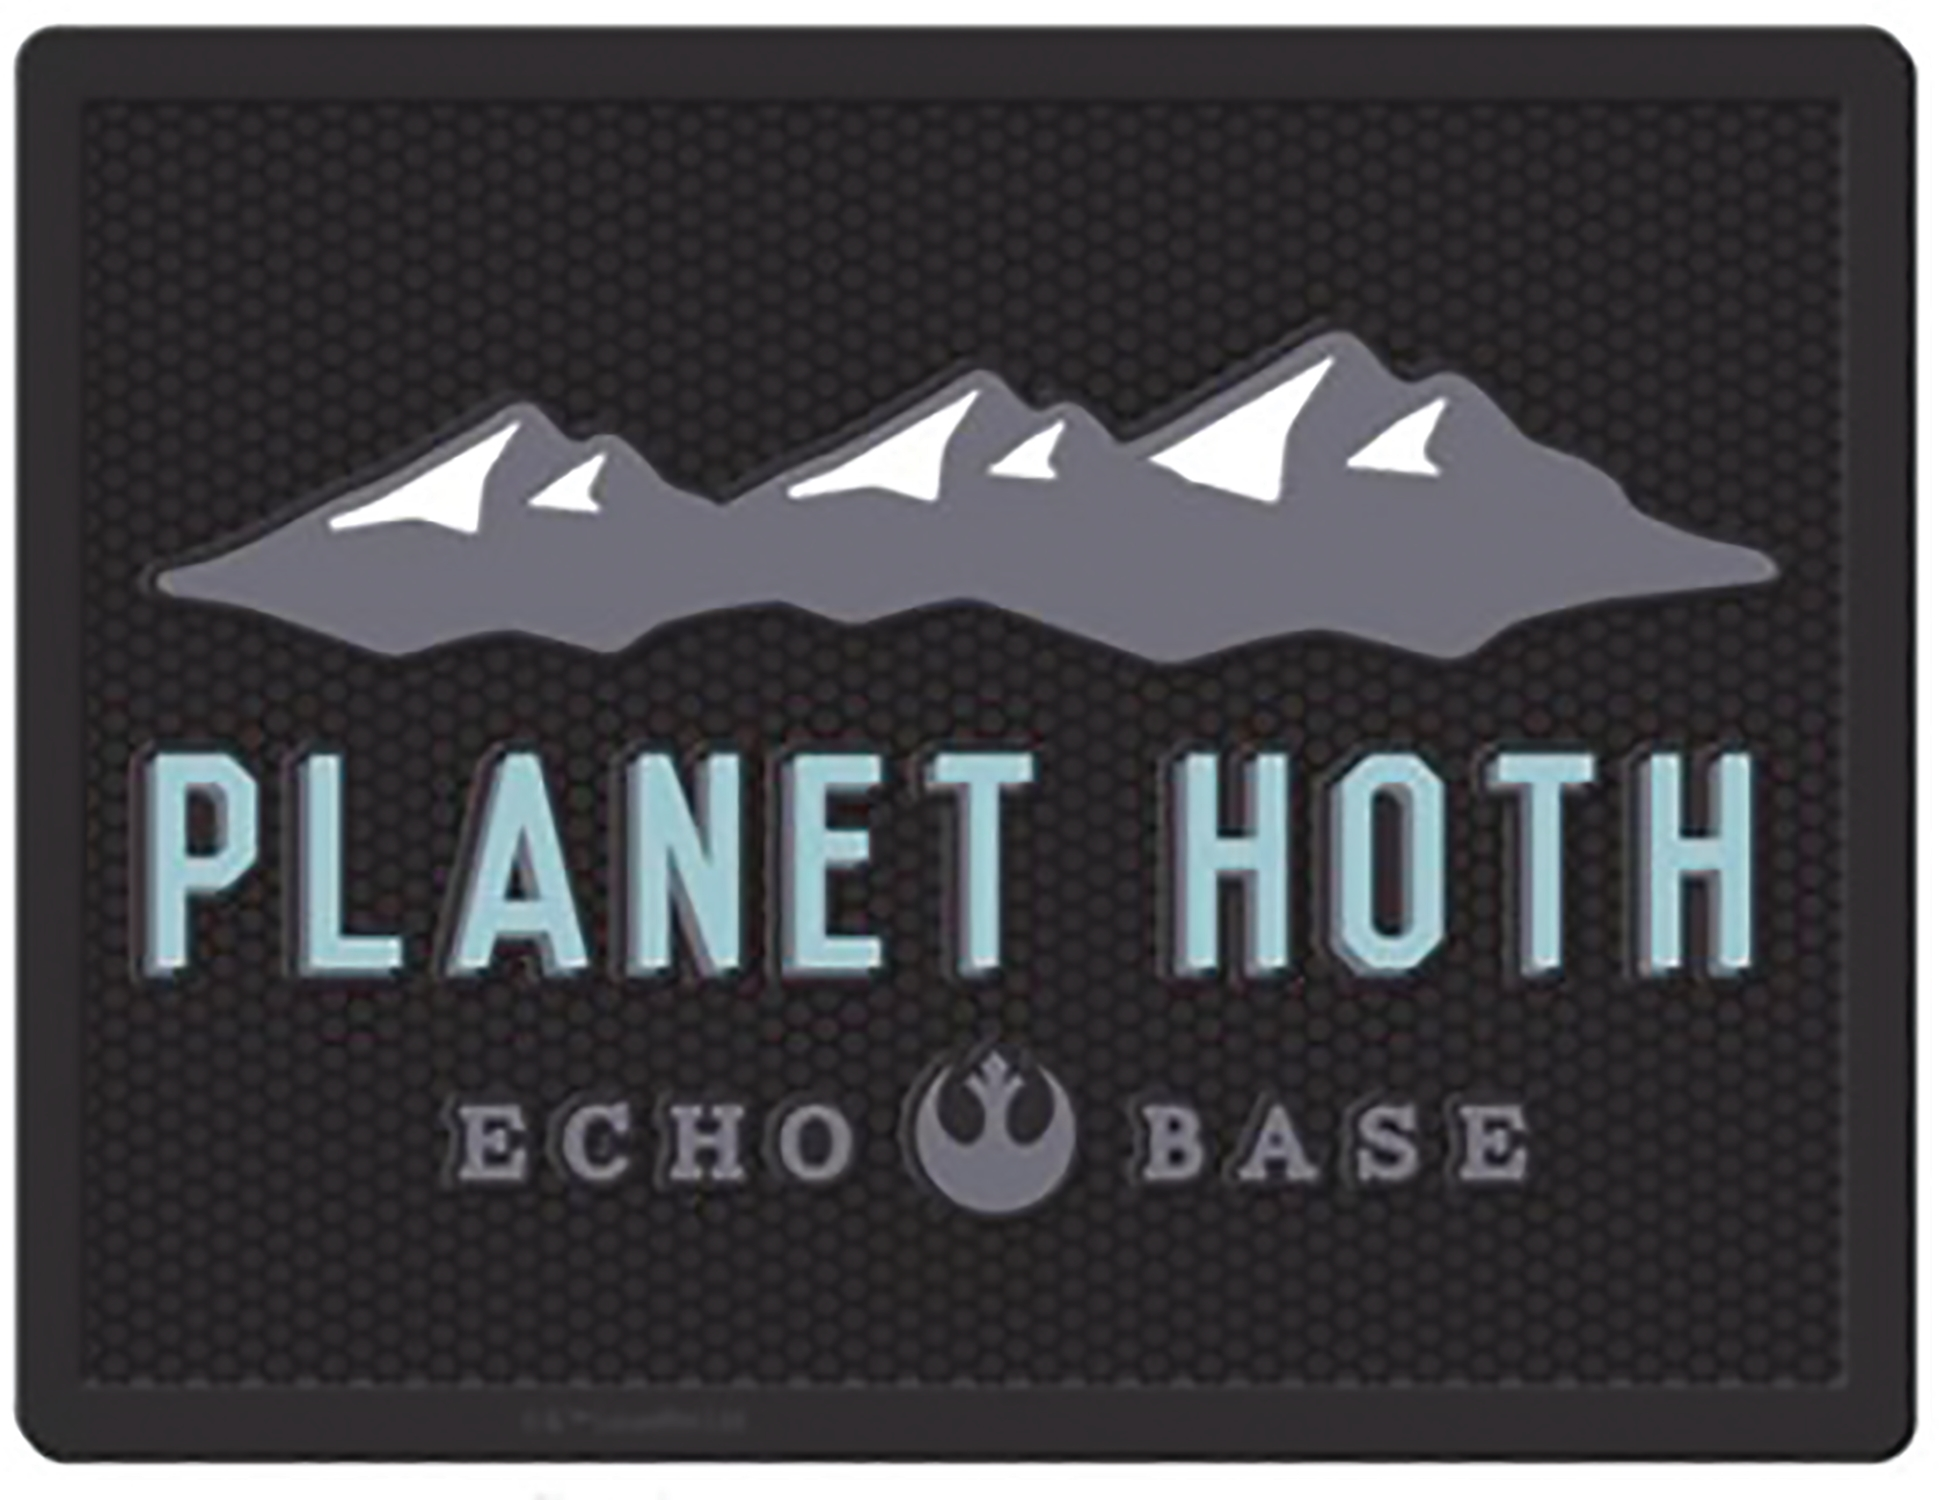 Star Wars: Planet Hoth Echo Base (Welcome Mat)